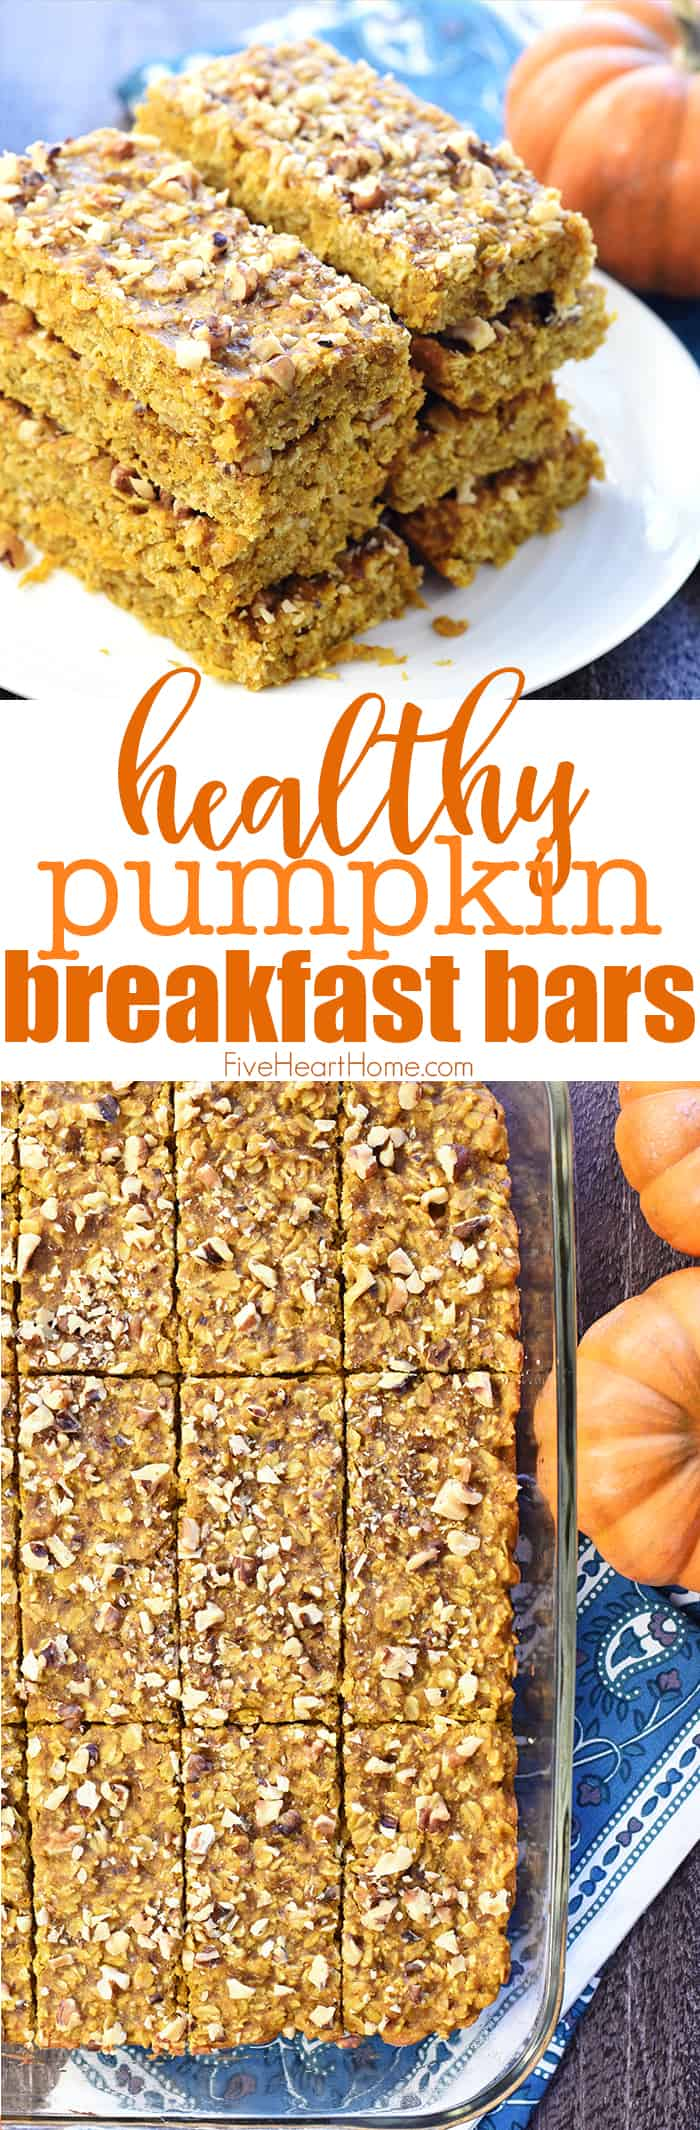 Healthy Pumpkin Breakfast Bars Collage with Text Overlay